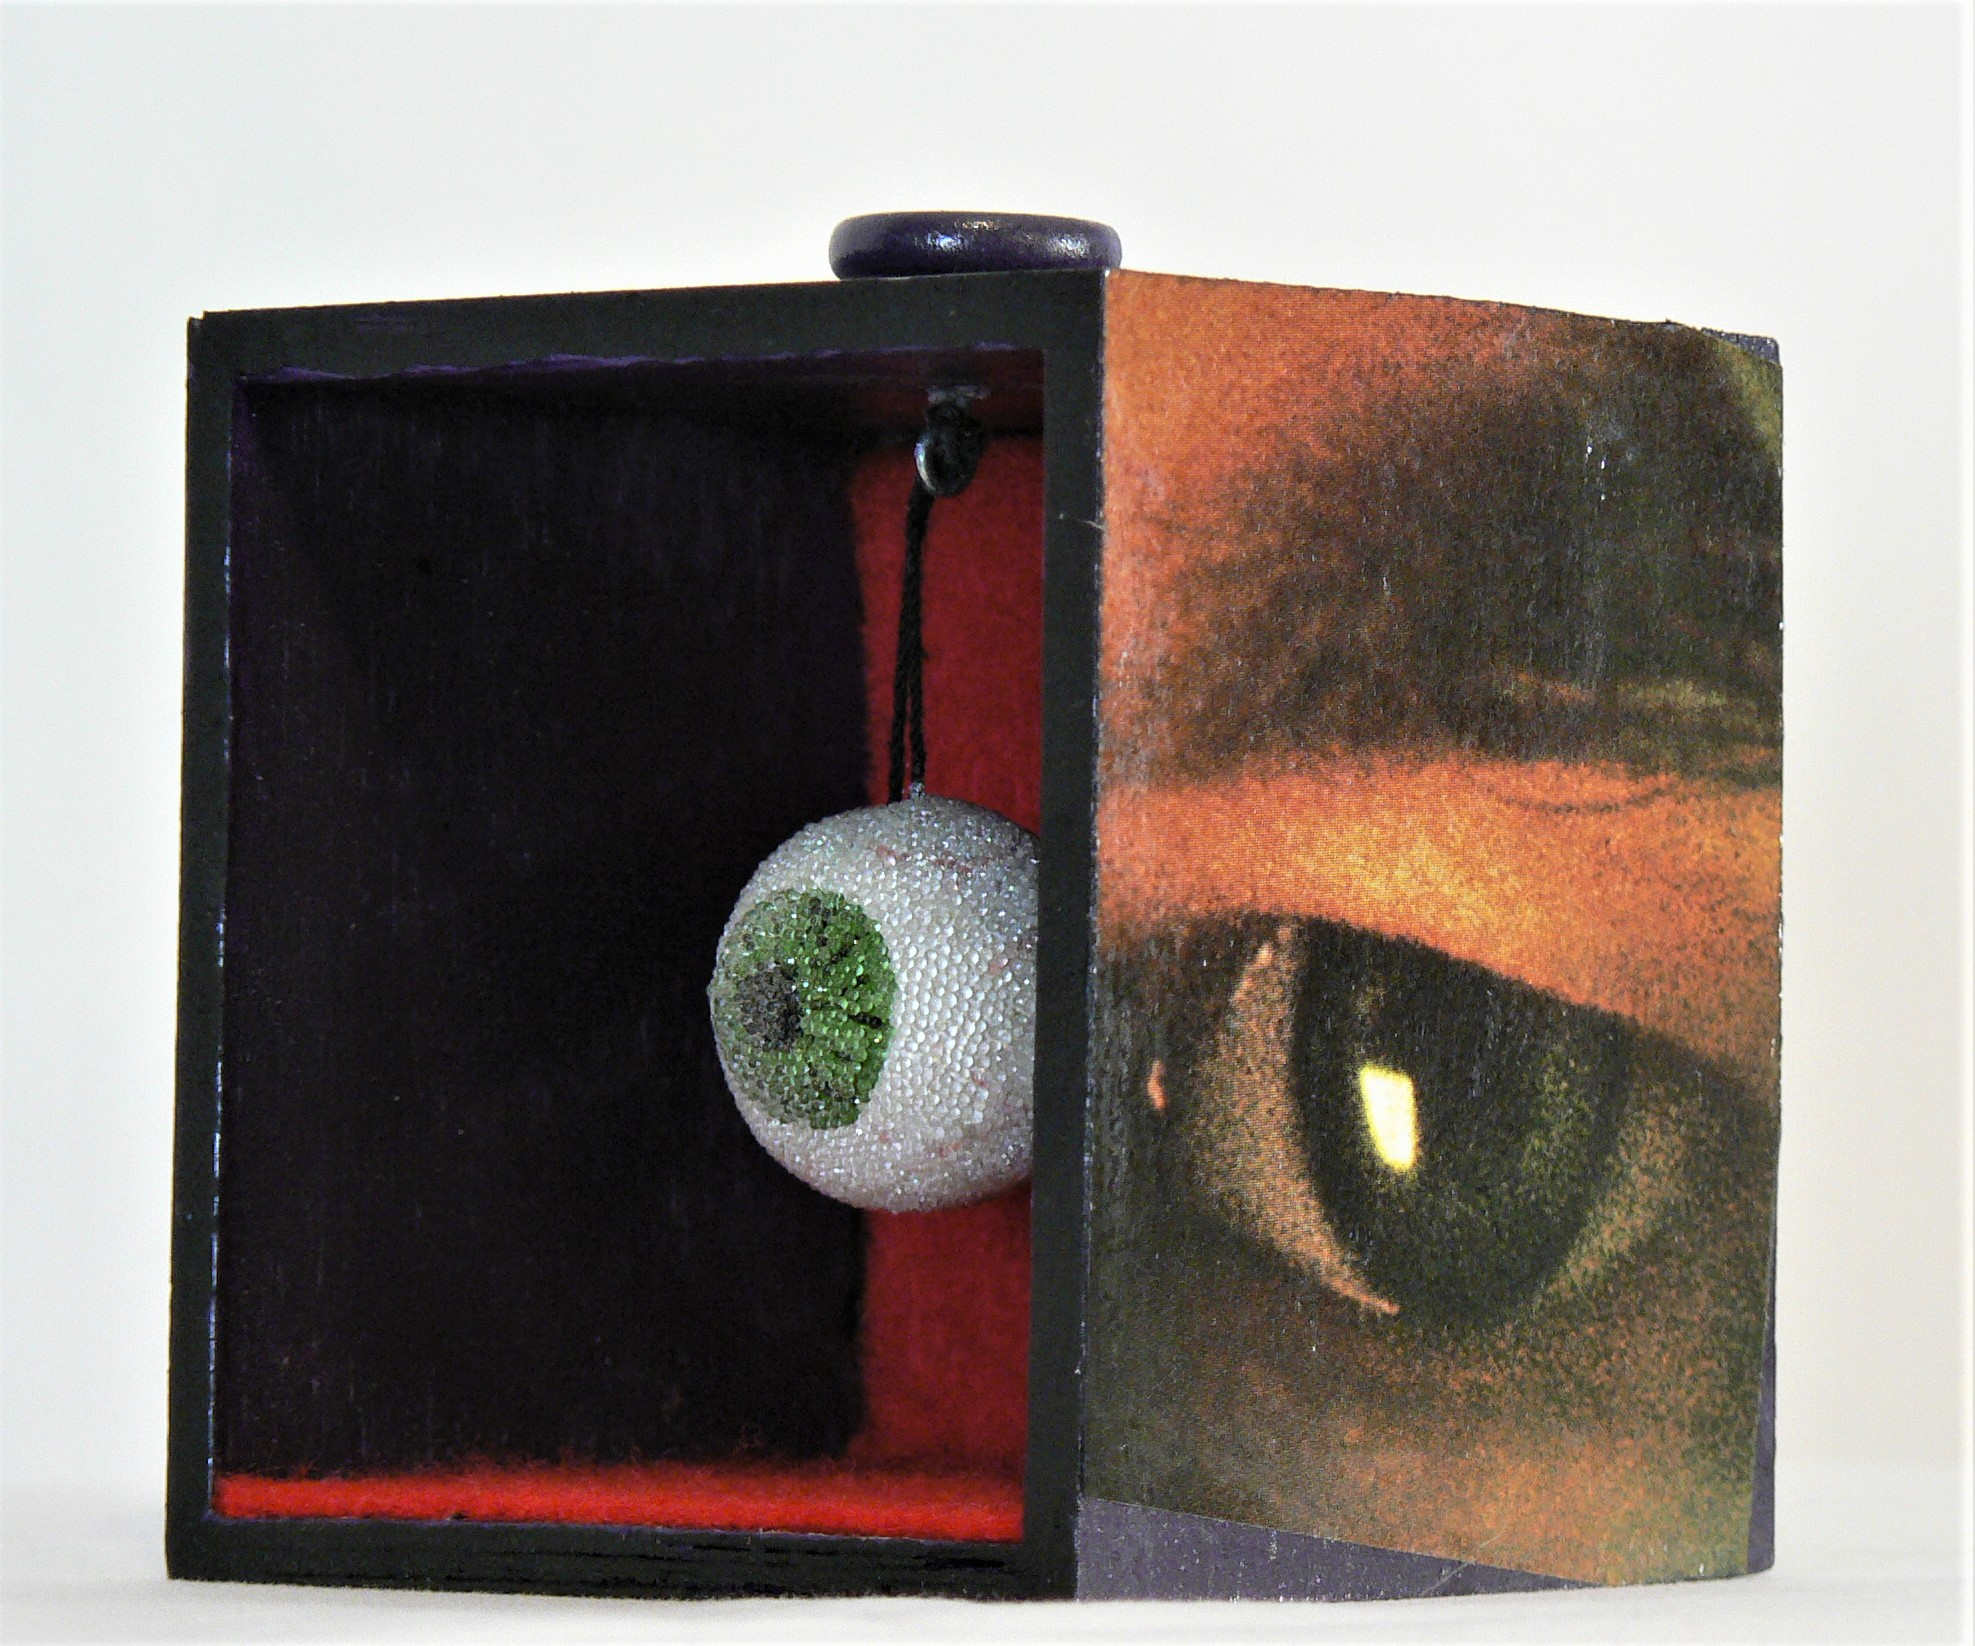 """The Eye - """"Never bend your head. Always hold it high. Look the world straight in the eye."""" -- Helen KellerMaterials: Wood box; felt; oil and acrylic paint; decorative eye; paper. Dimensions: 3""""H x 3""""W x 3""""D. Created: March 2018.Status: For Sale ($50)"""